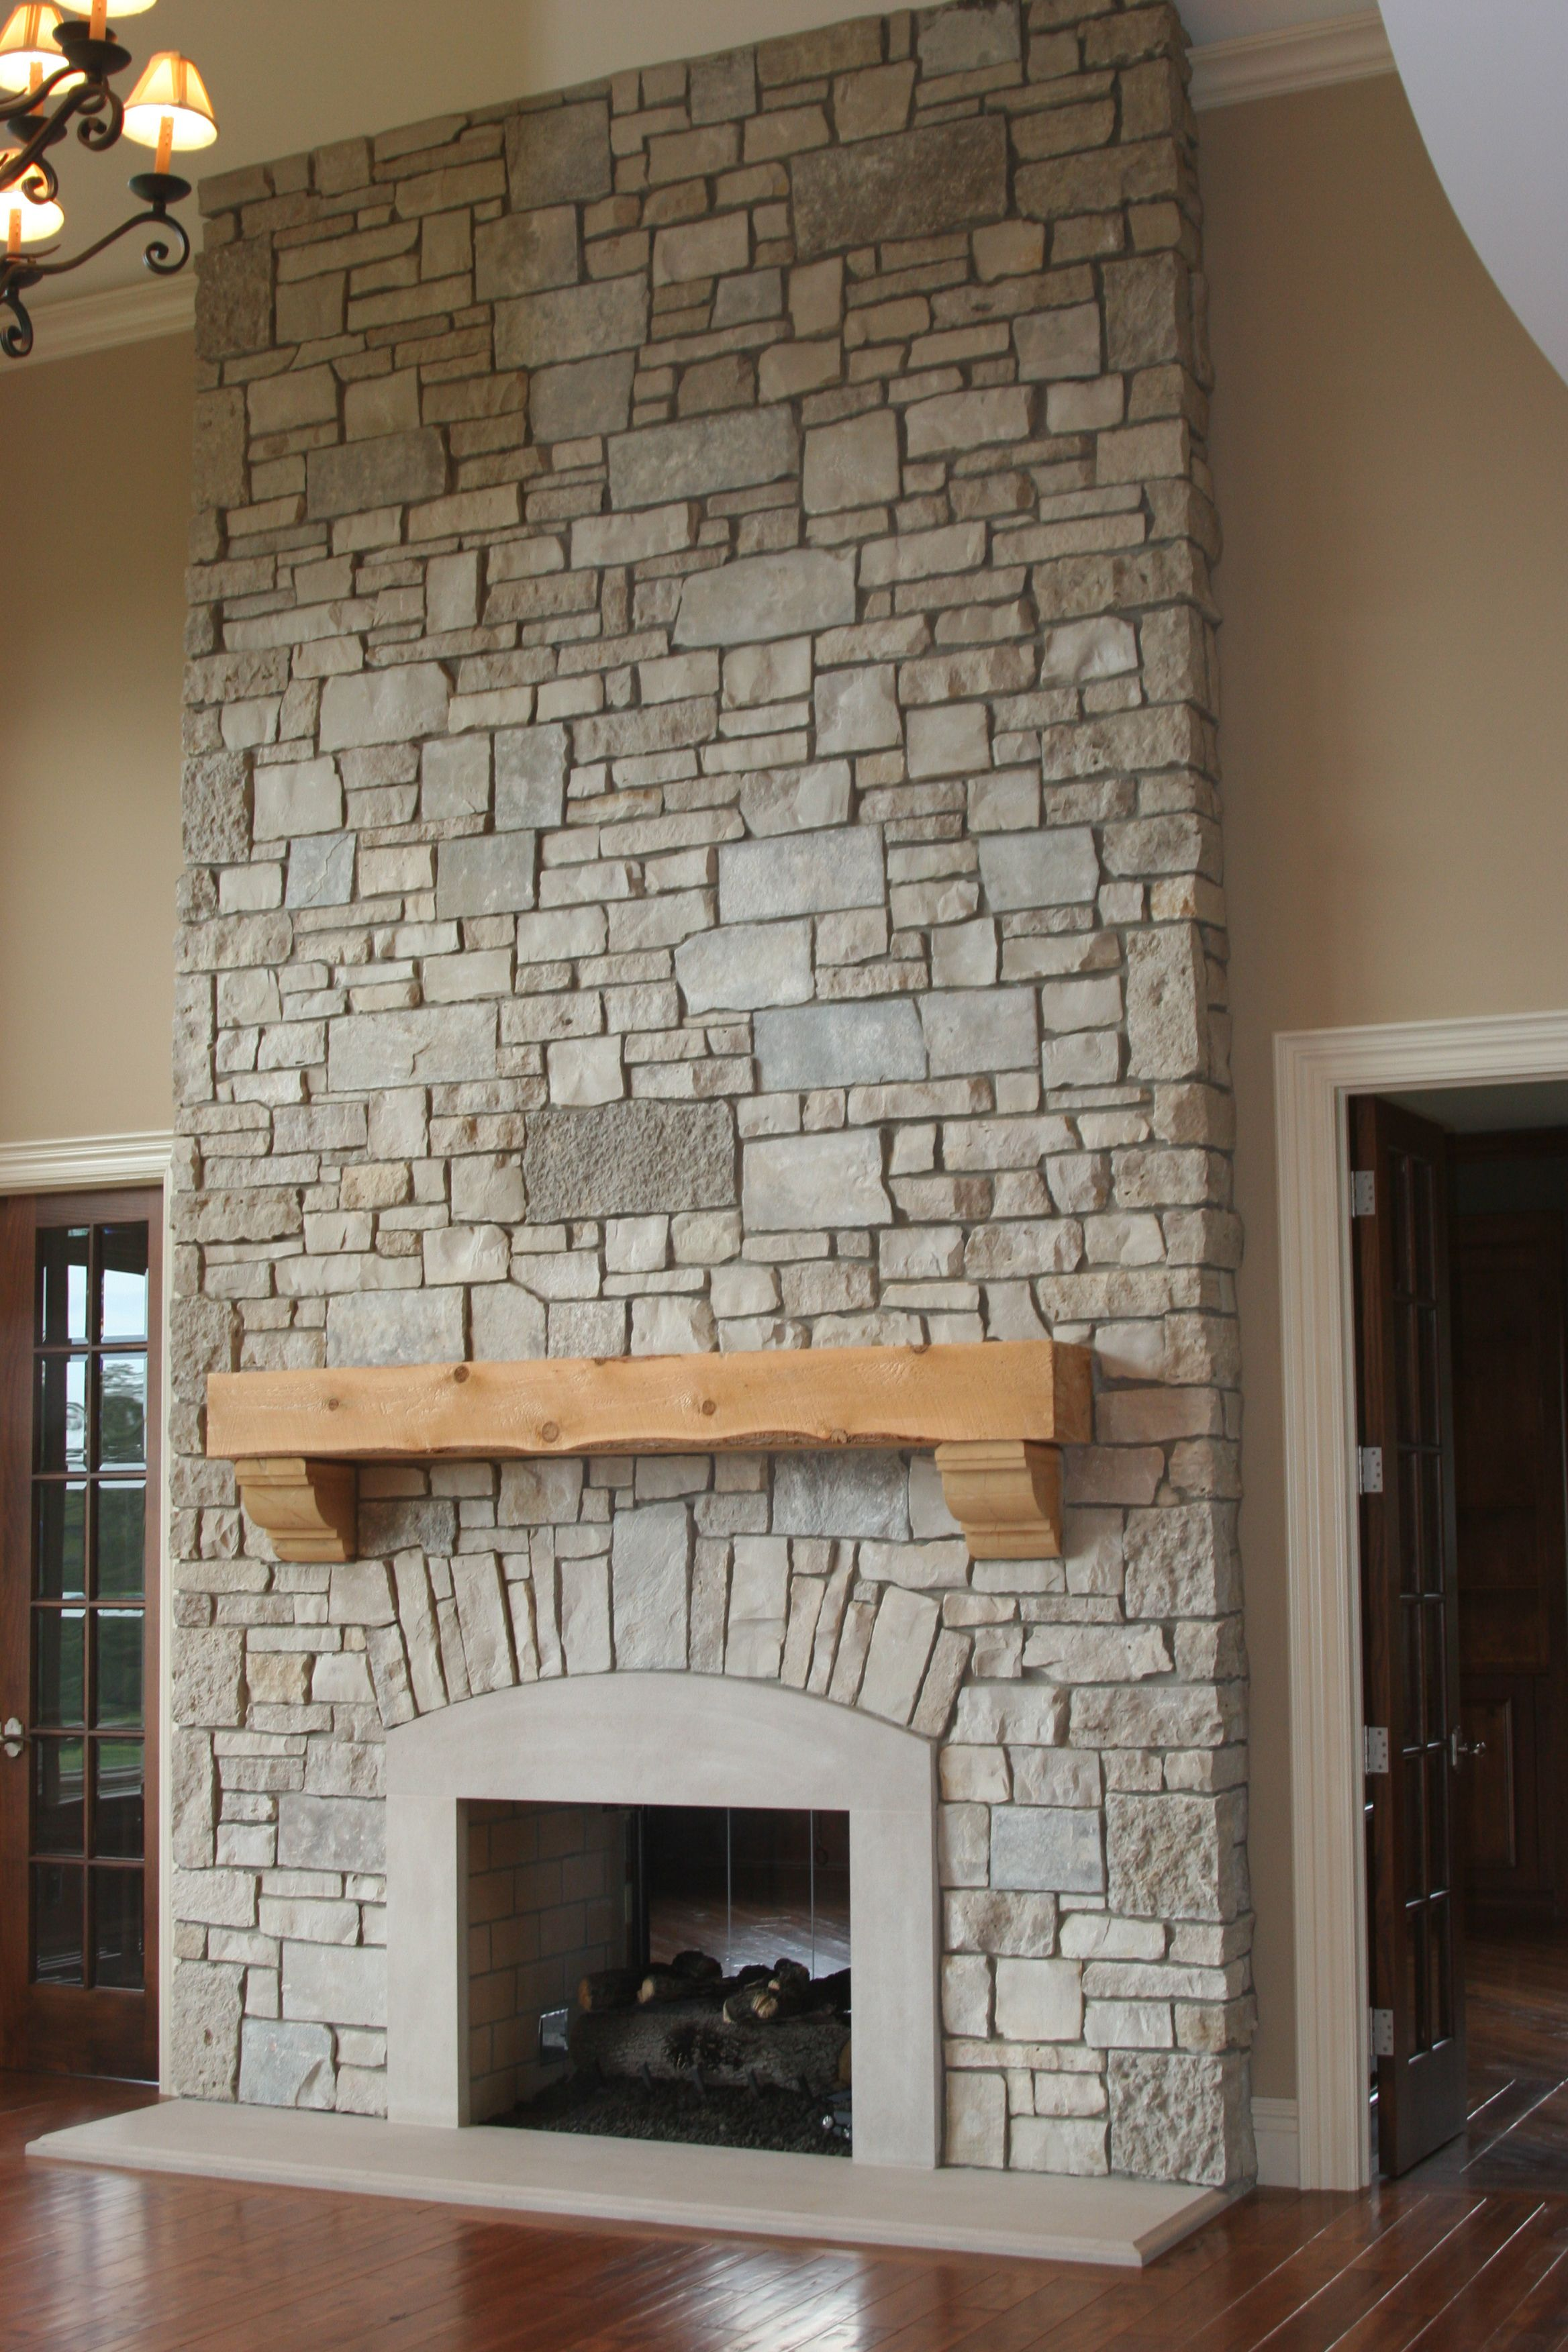 10 best images about fireplace tile on pinterest mantles hearth